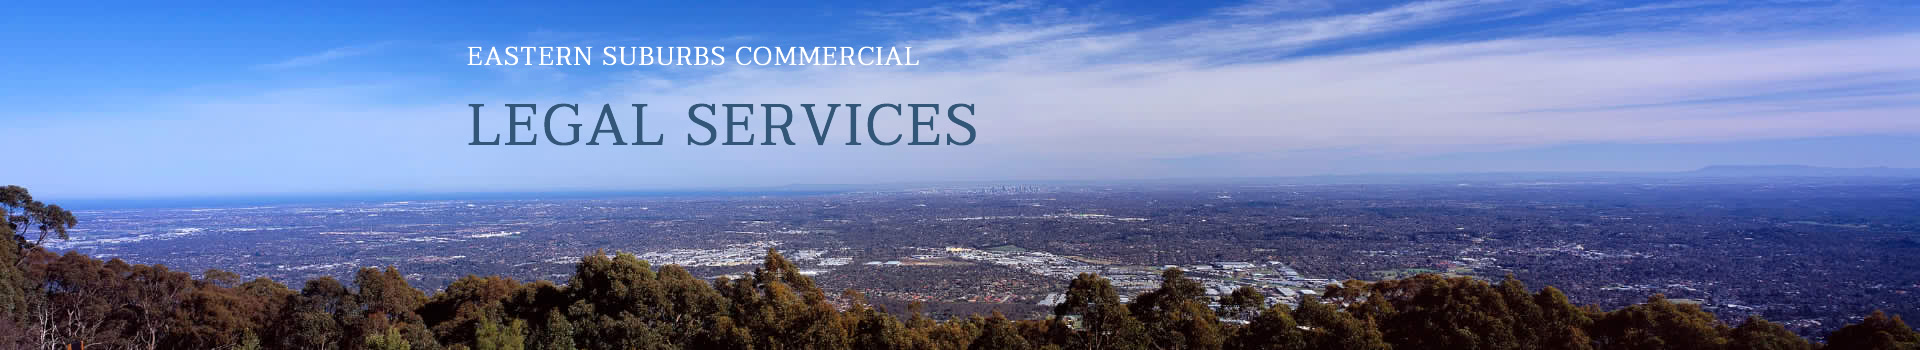 Eastern Suburbs Commercial Legal Services